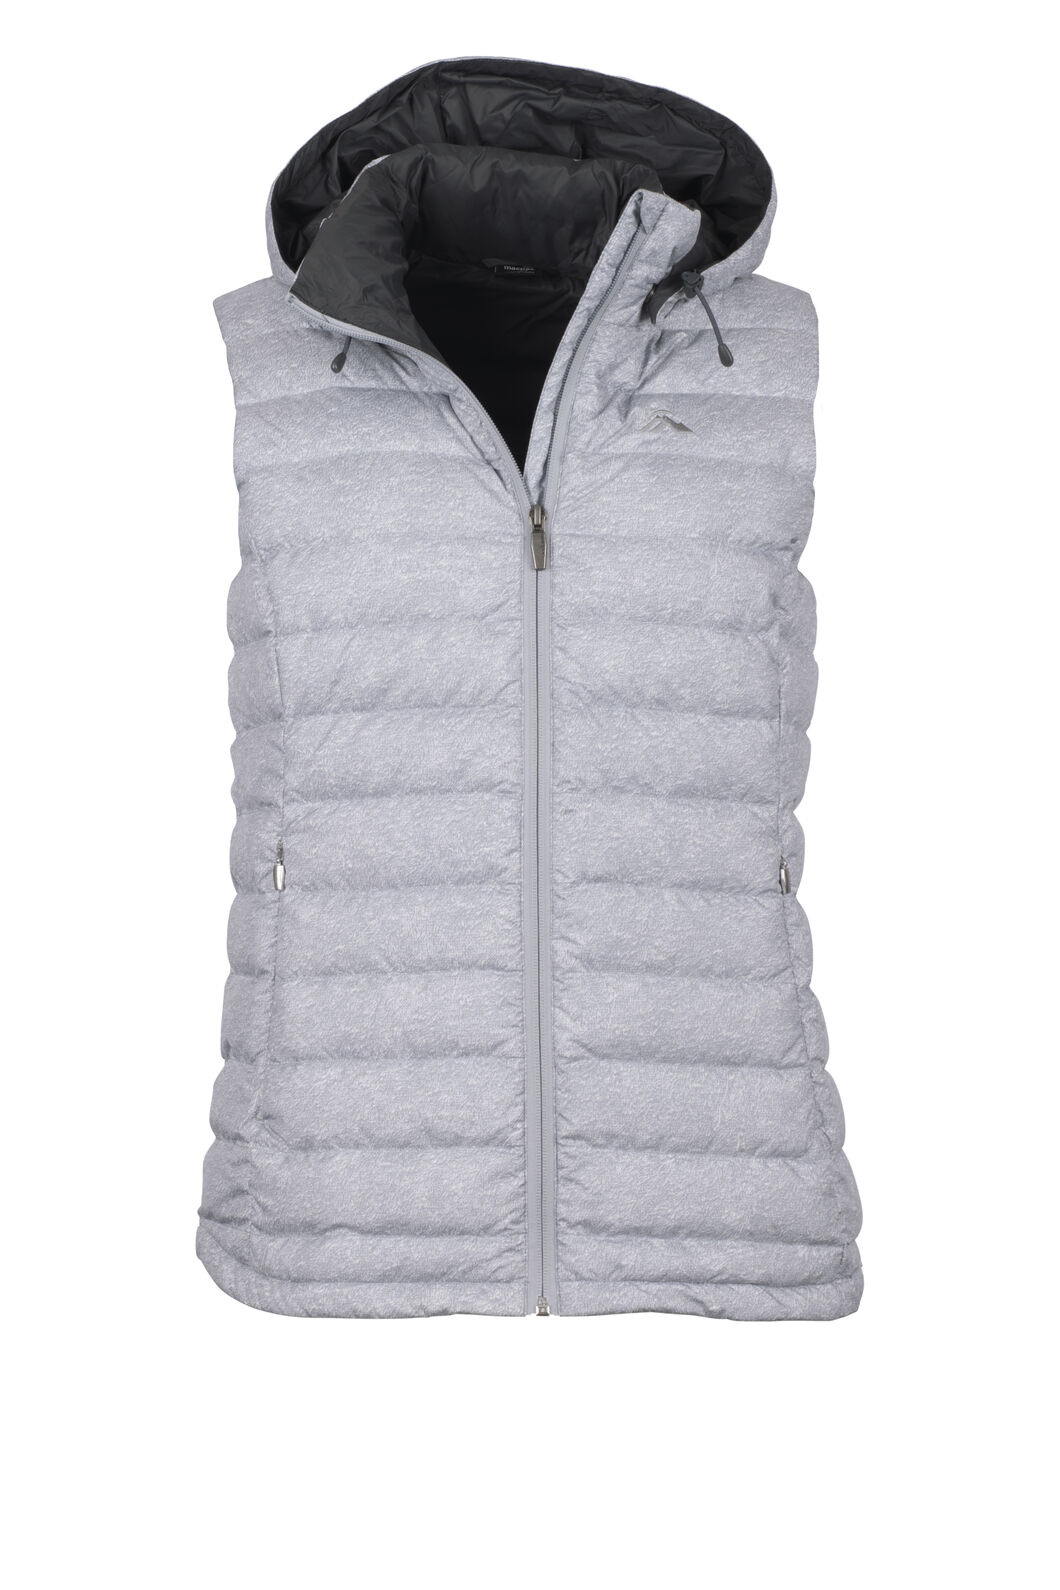 Macpac Zodiac Hooded Down Vest - Women's, Alloy Spec Print, hi-res